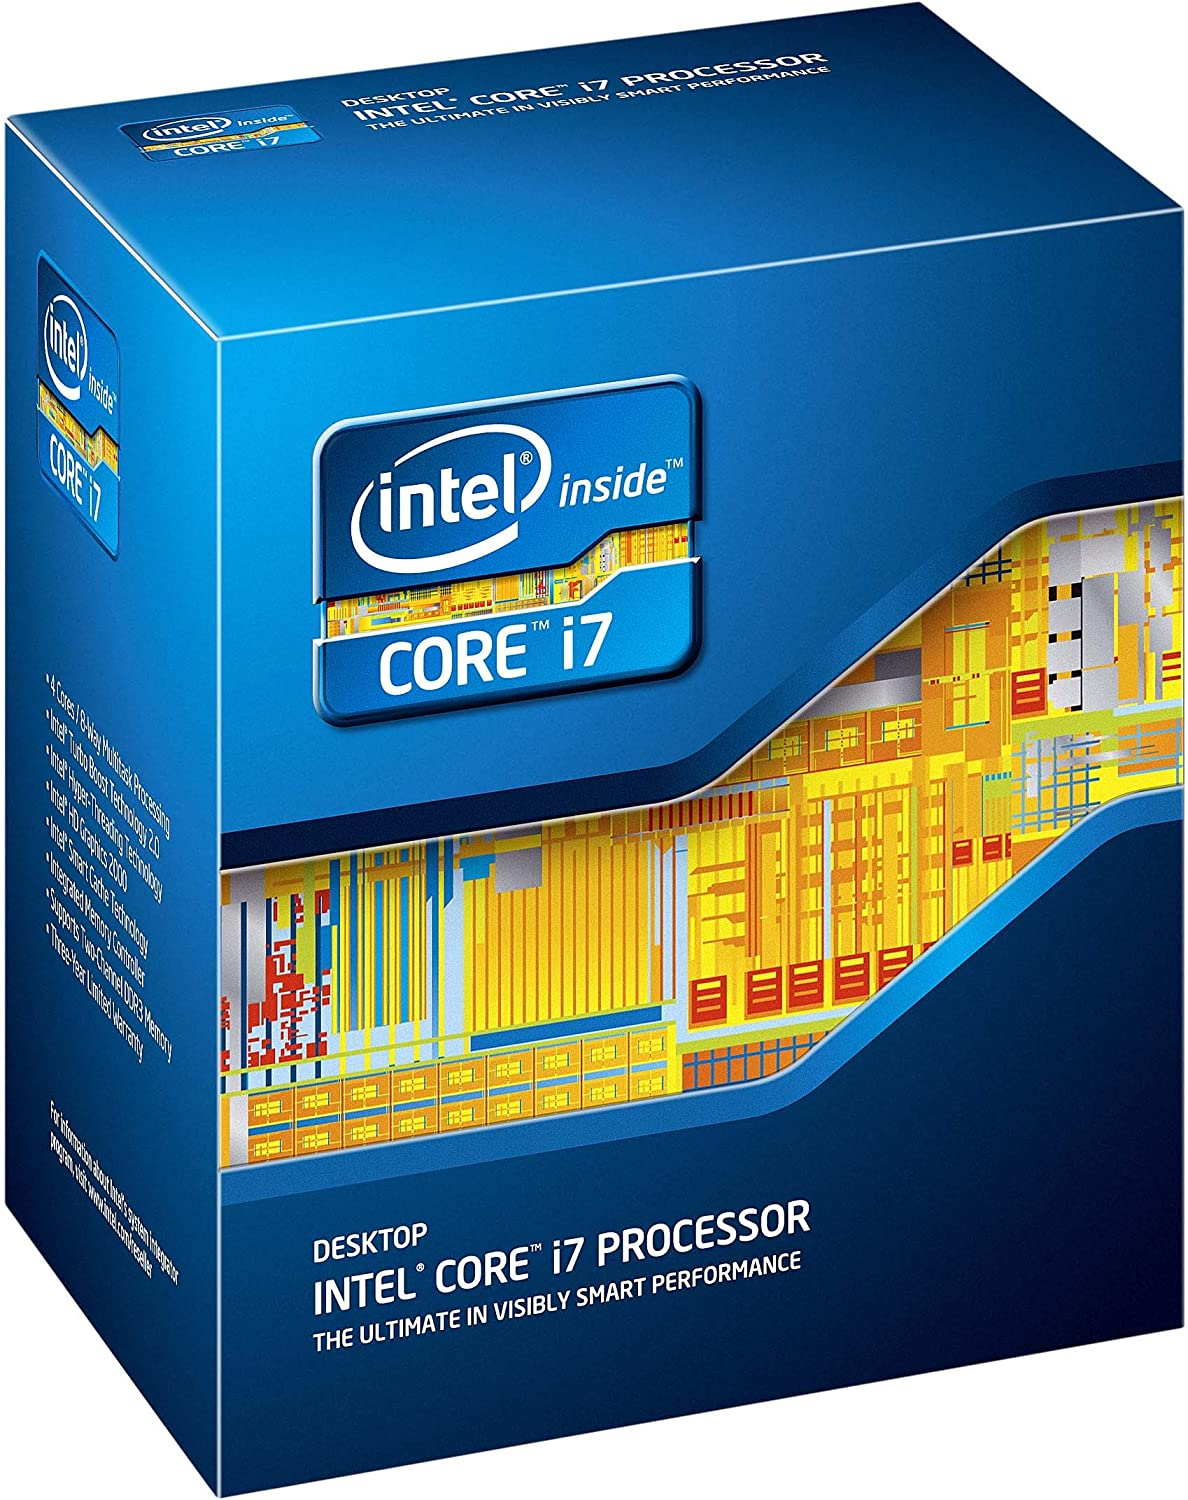 Intel BX80623I72600 Core i7-2600 Quad-Core Processor 3.4 GHz 8 MB Cache LGA 1155